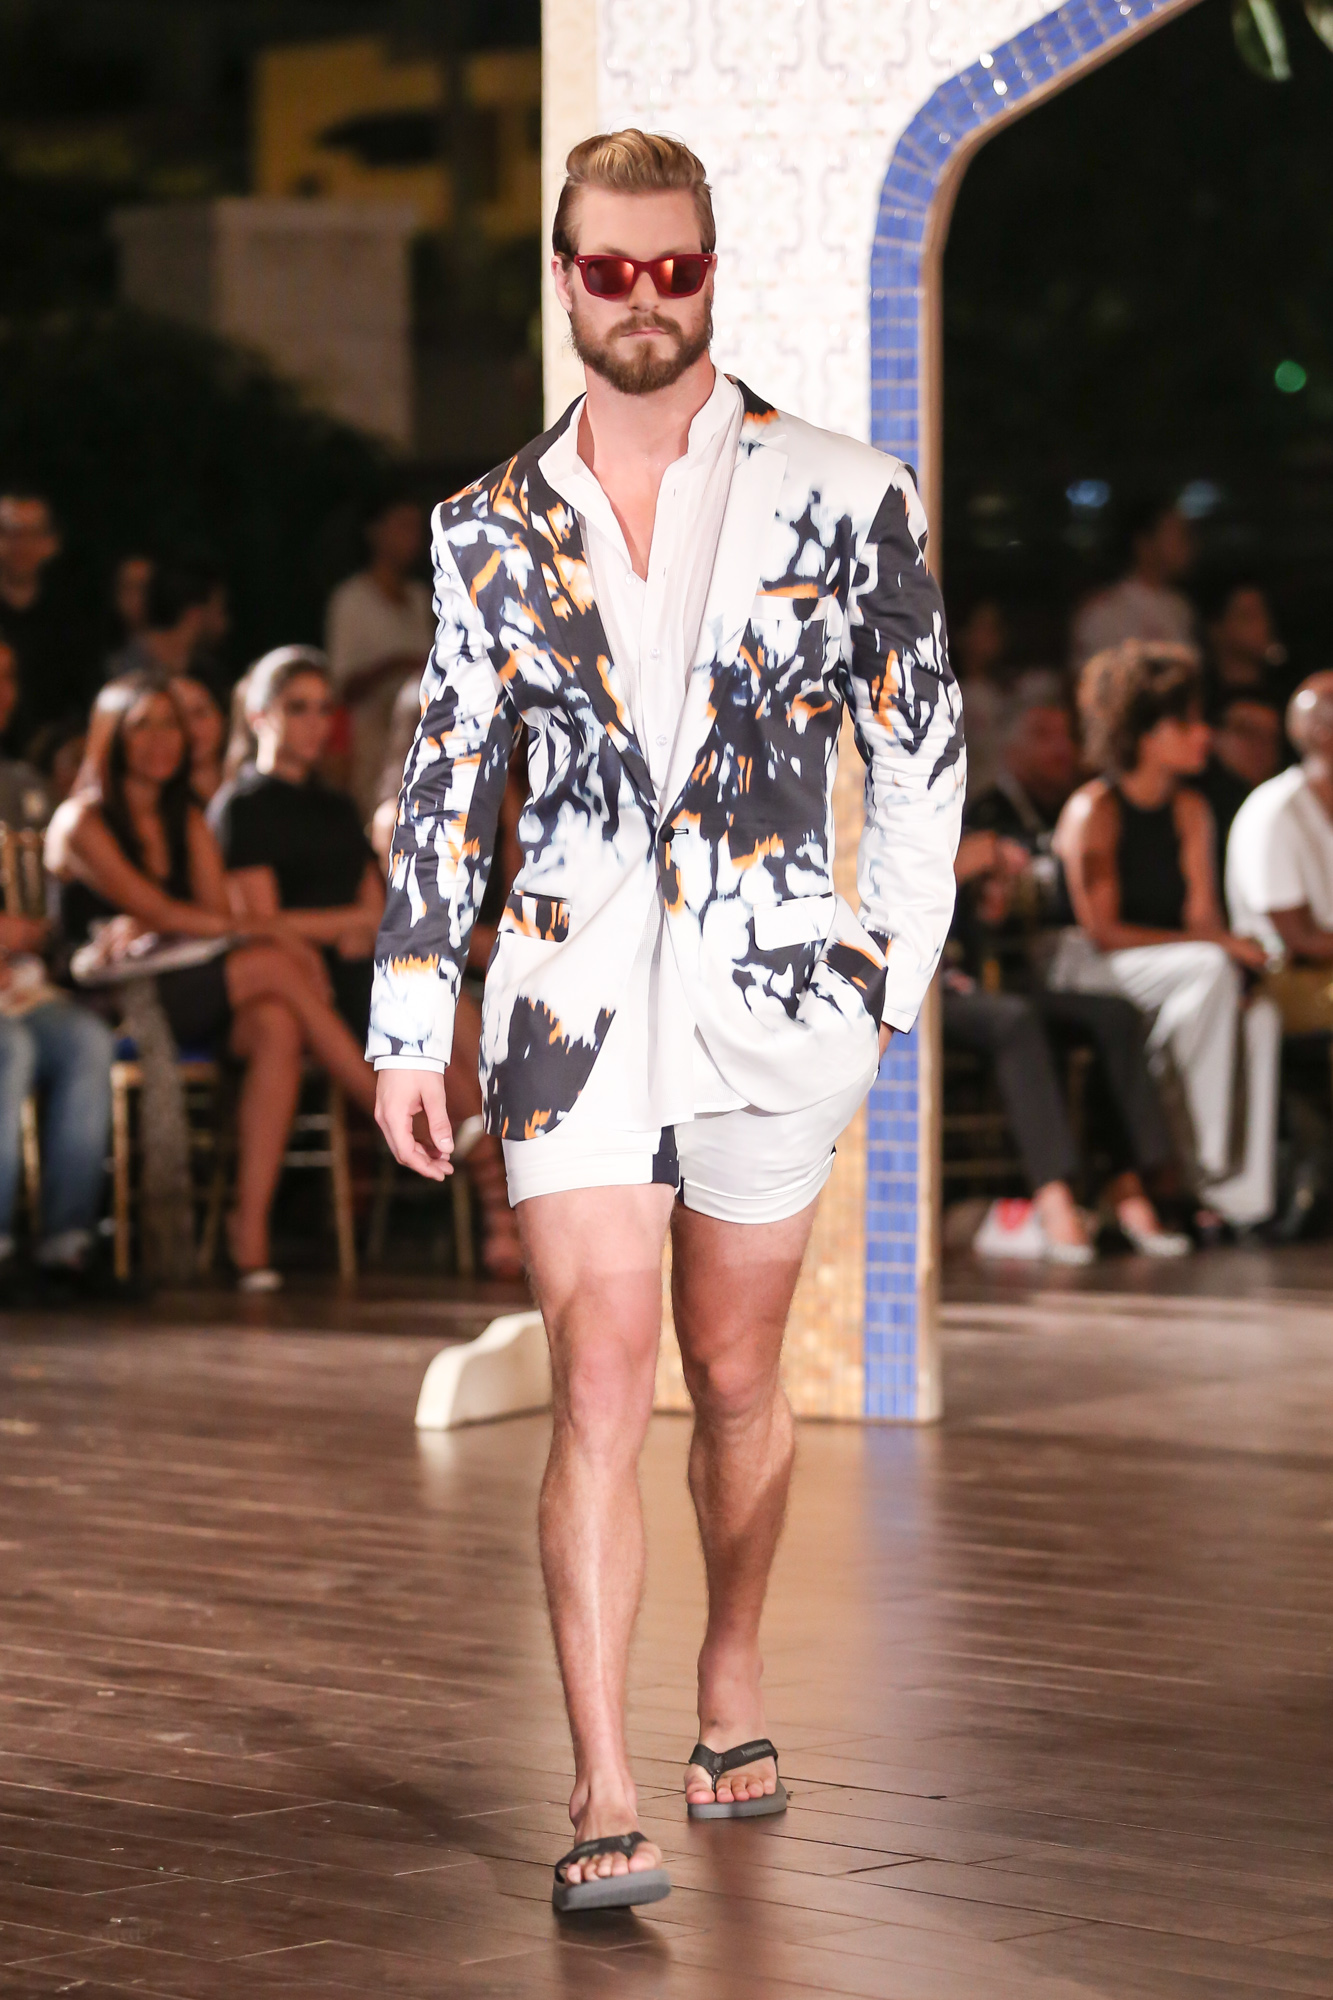 Jose-Jhan-Dominicana-Moda-Freddy-Cruz-2015-SS16-Sagaboi-Look-52